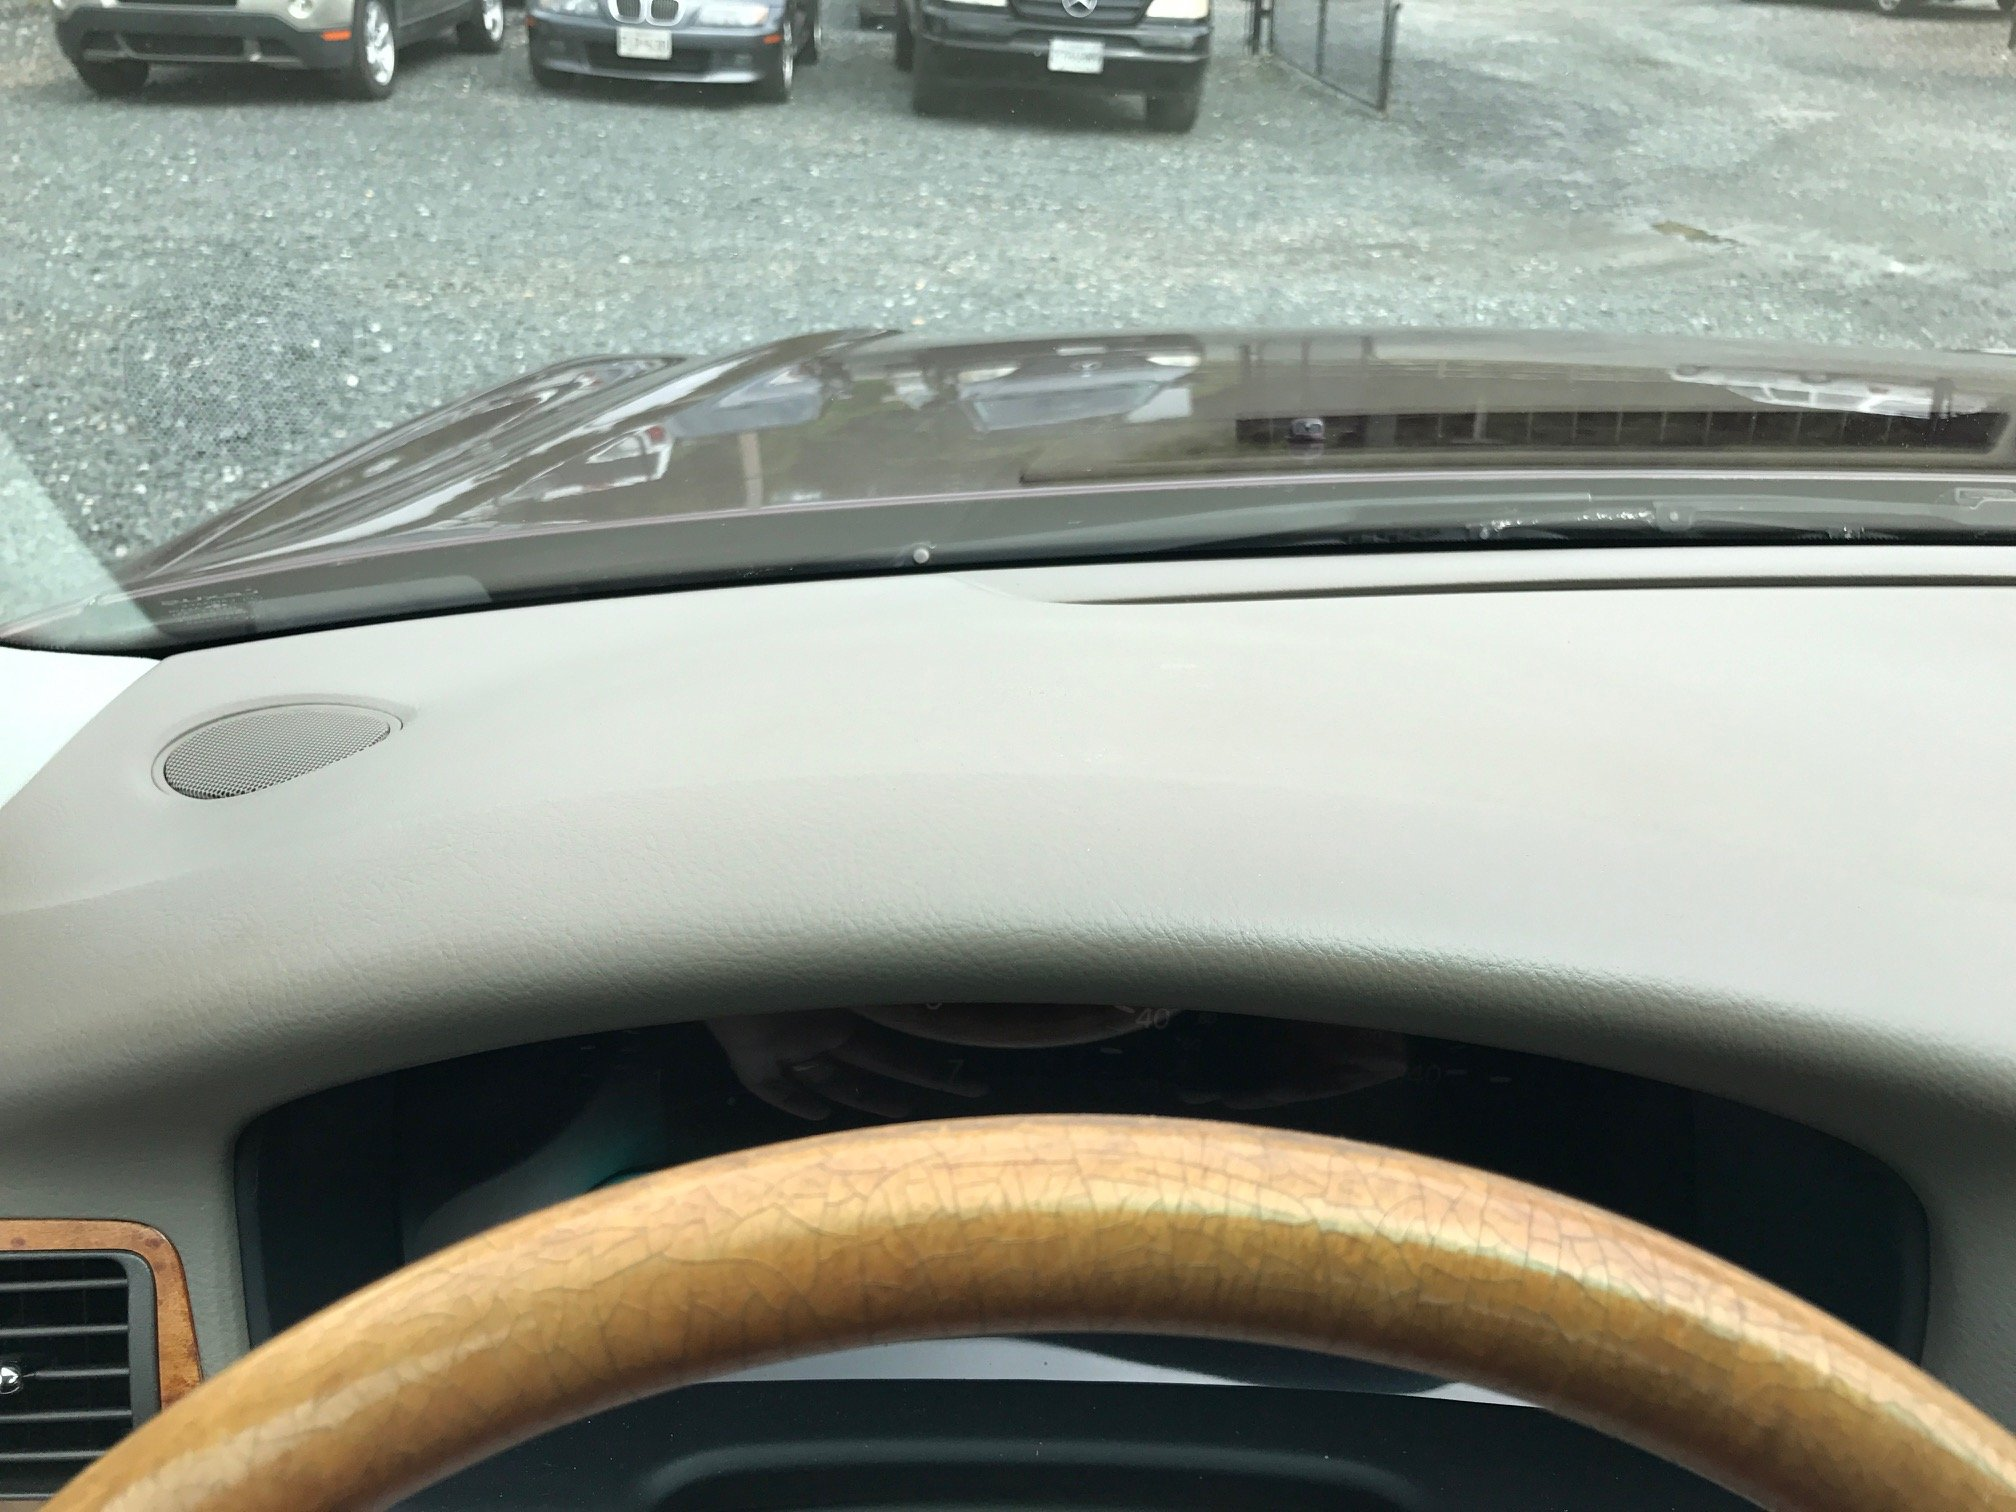 The dash was blistered by sun exposure and surface was repaired and correct texture and color match.